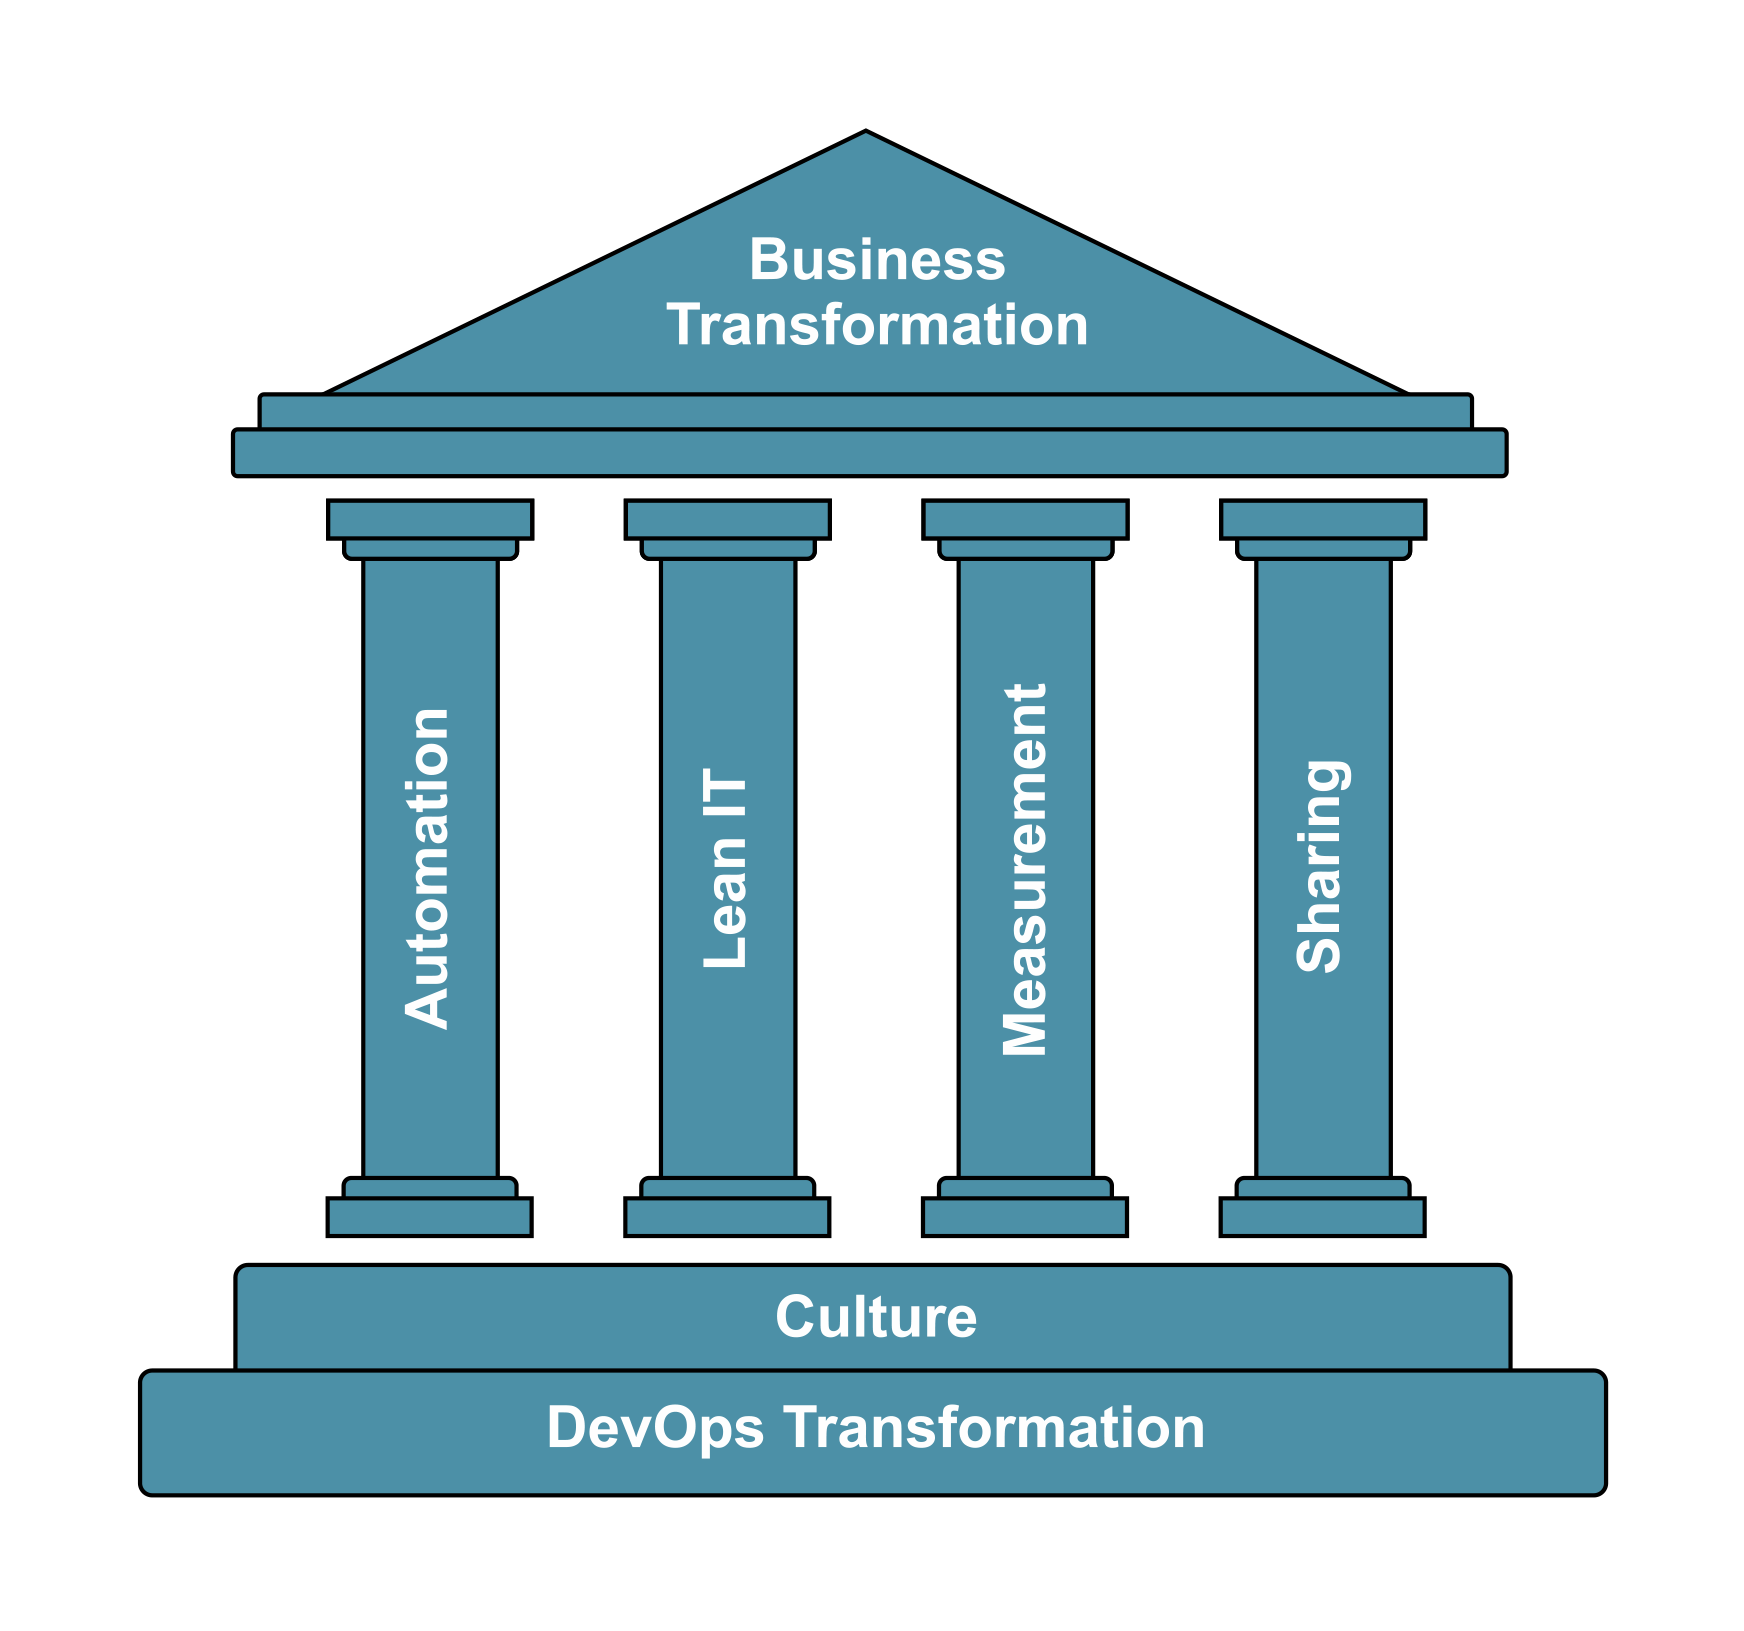 The CALMS model sets out the principles of DevOps